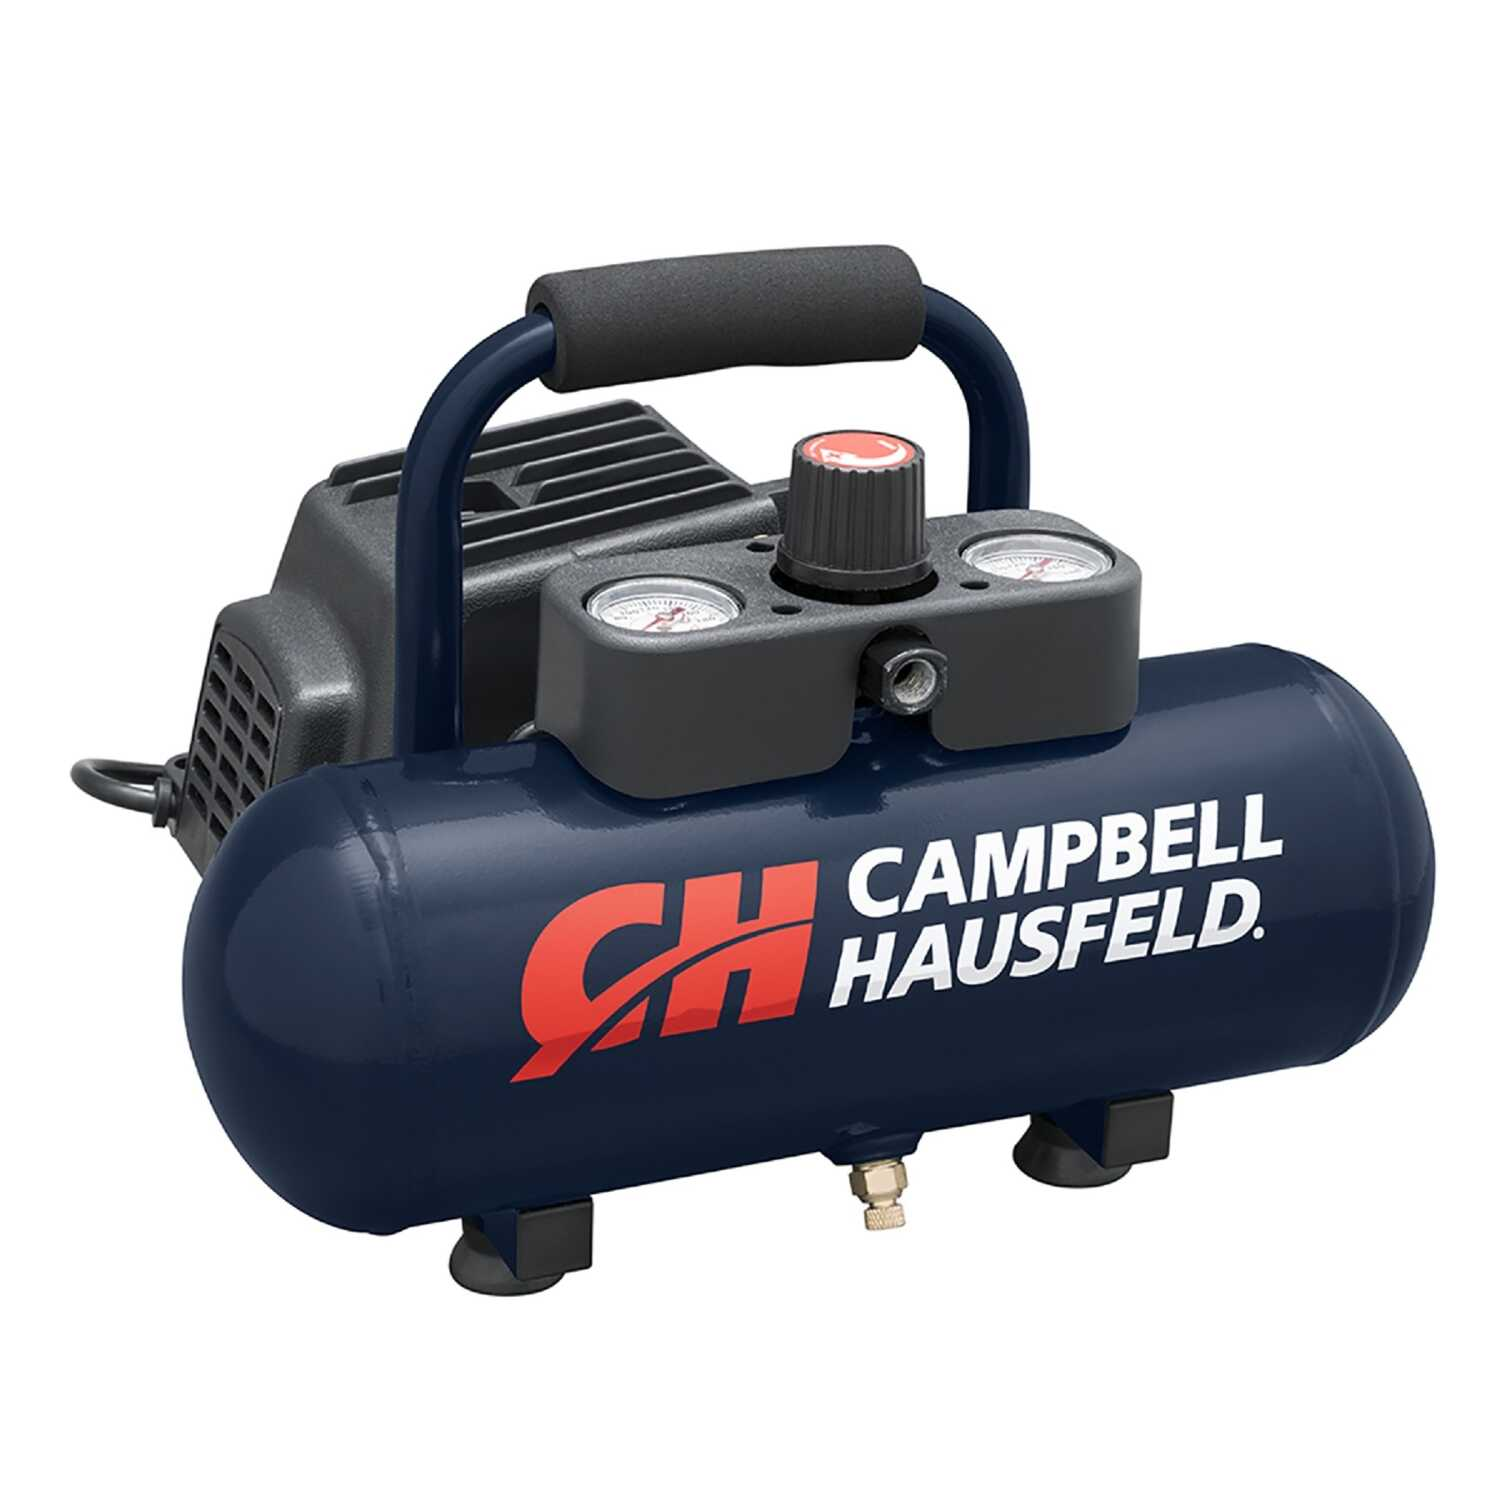 Campbell Hausfeld  1 gal. Portable Air Compressor  125 psi 0.33 hp